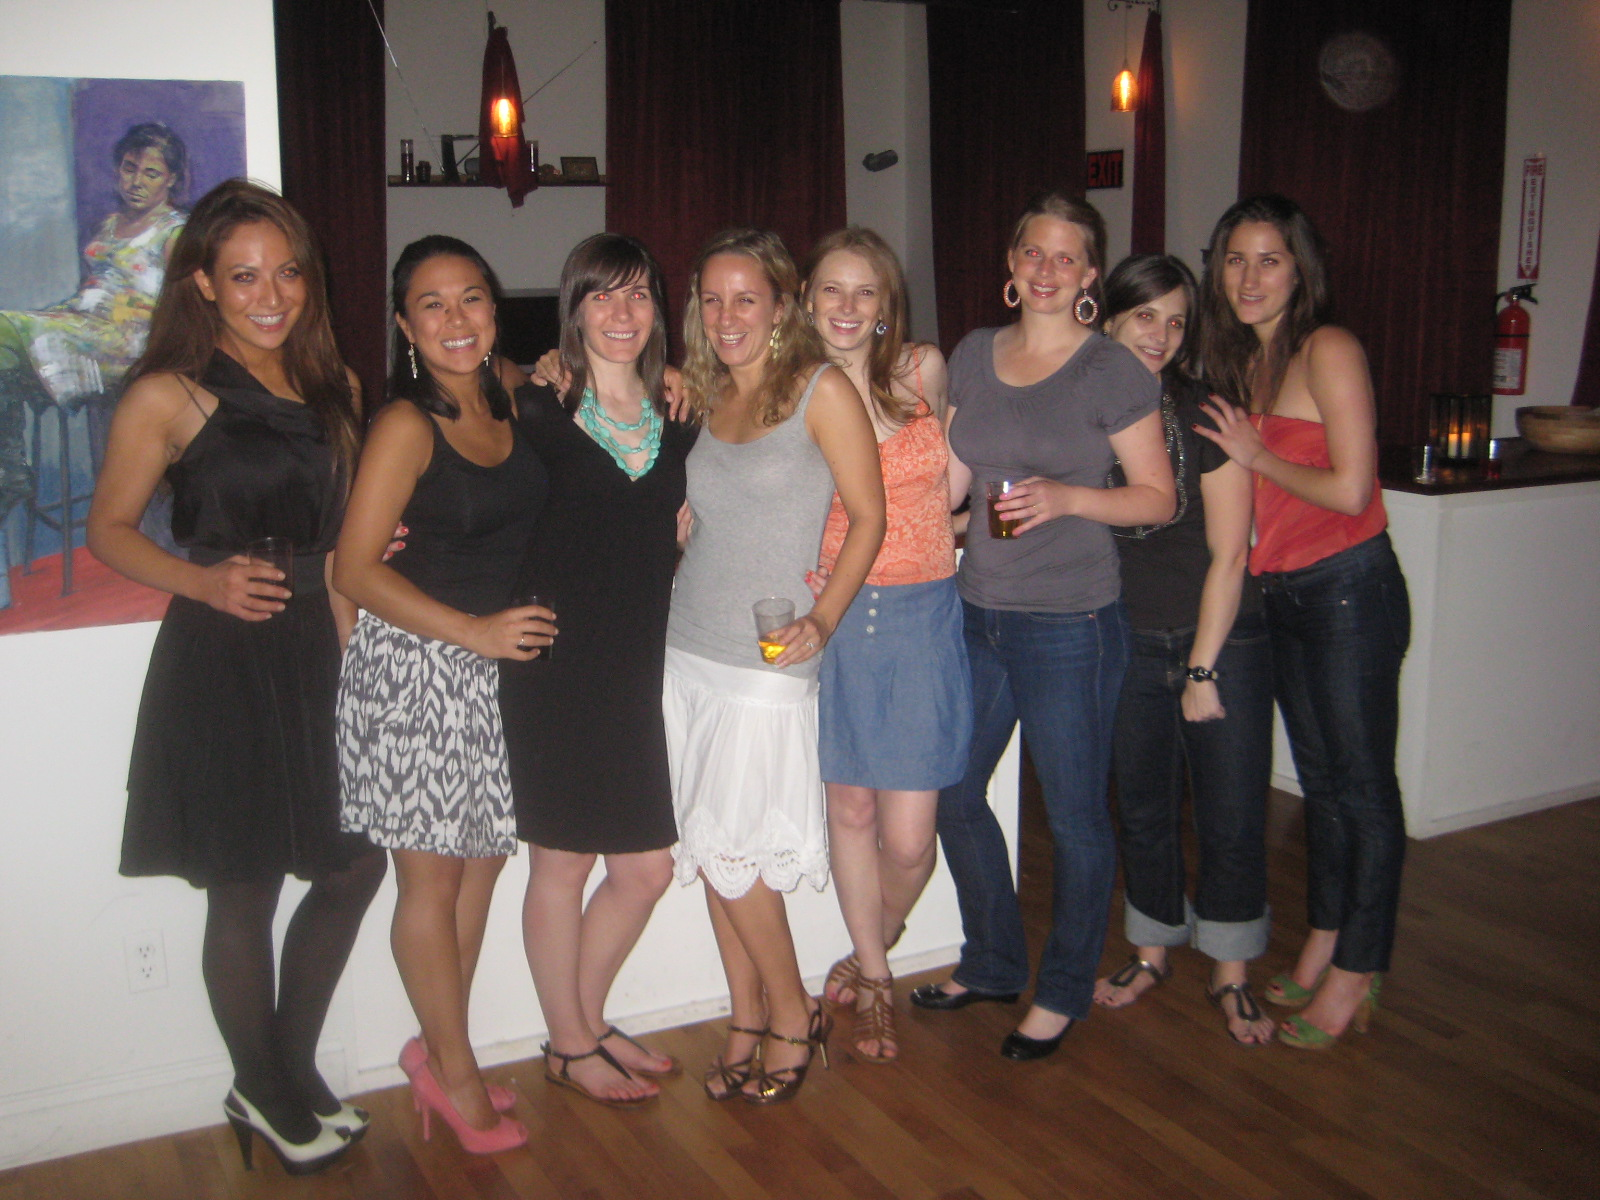 image Bachelorette party part 1